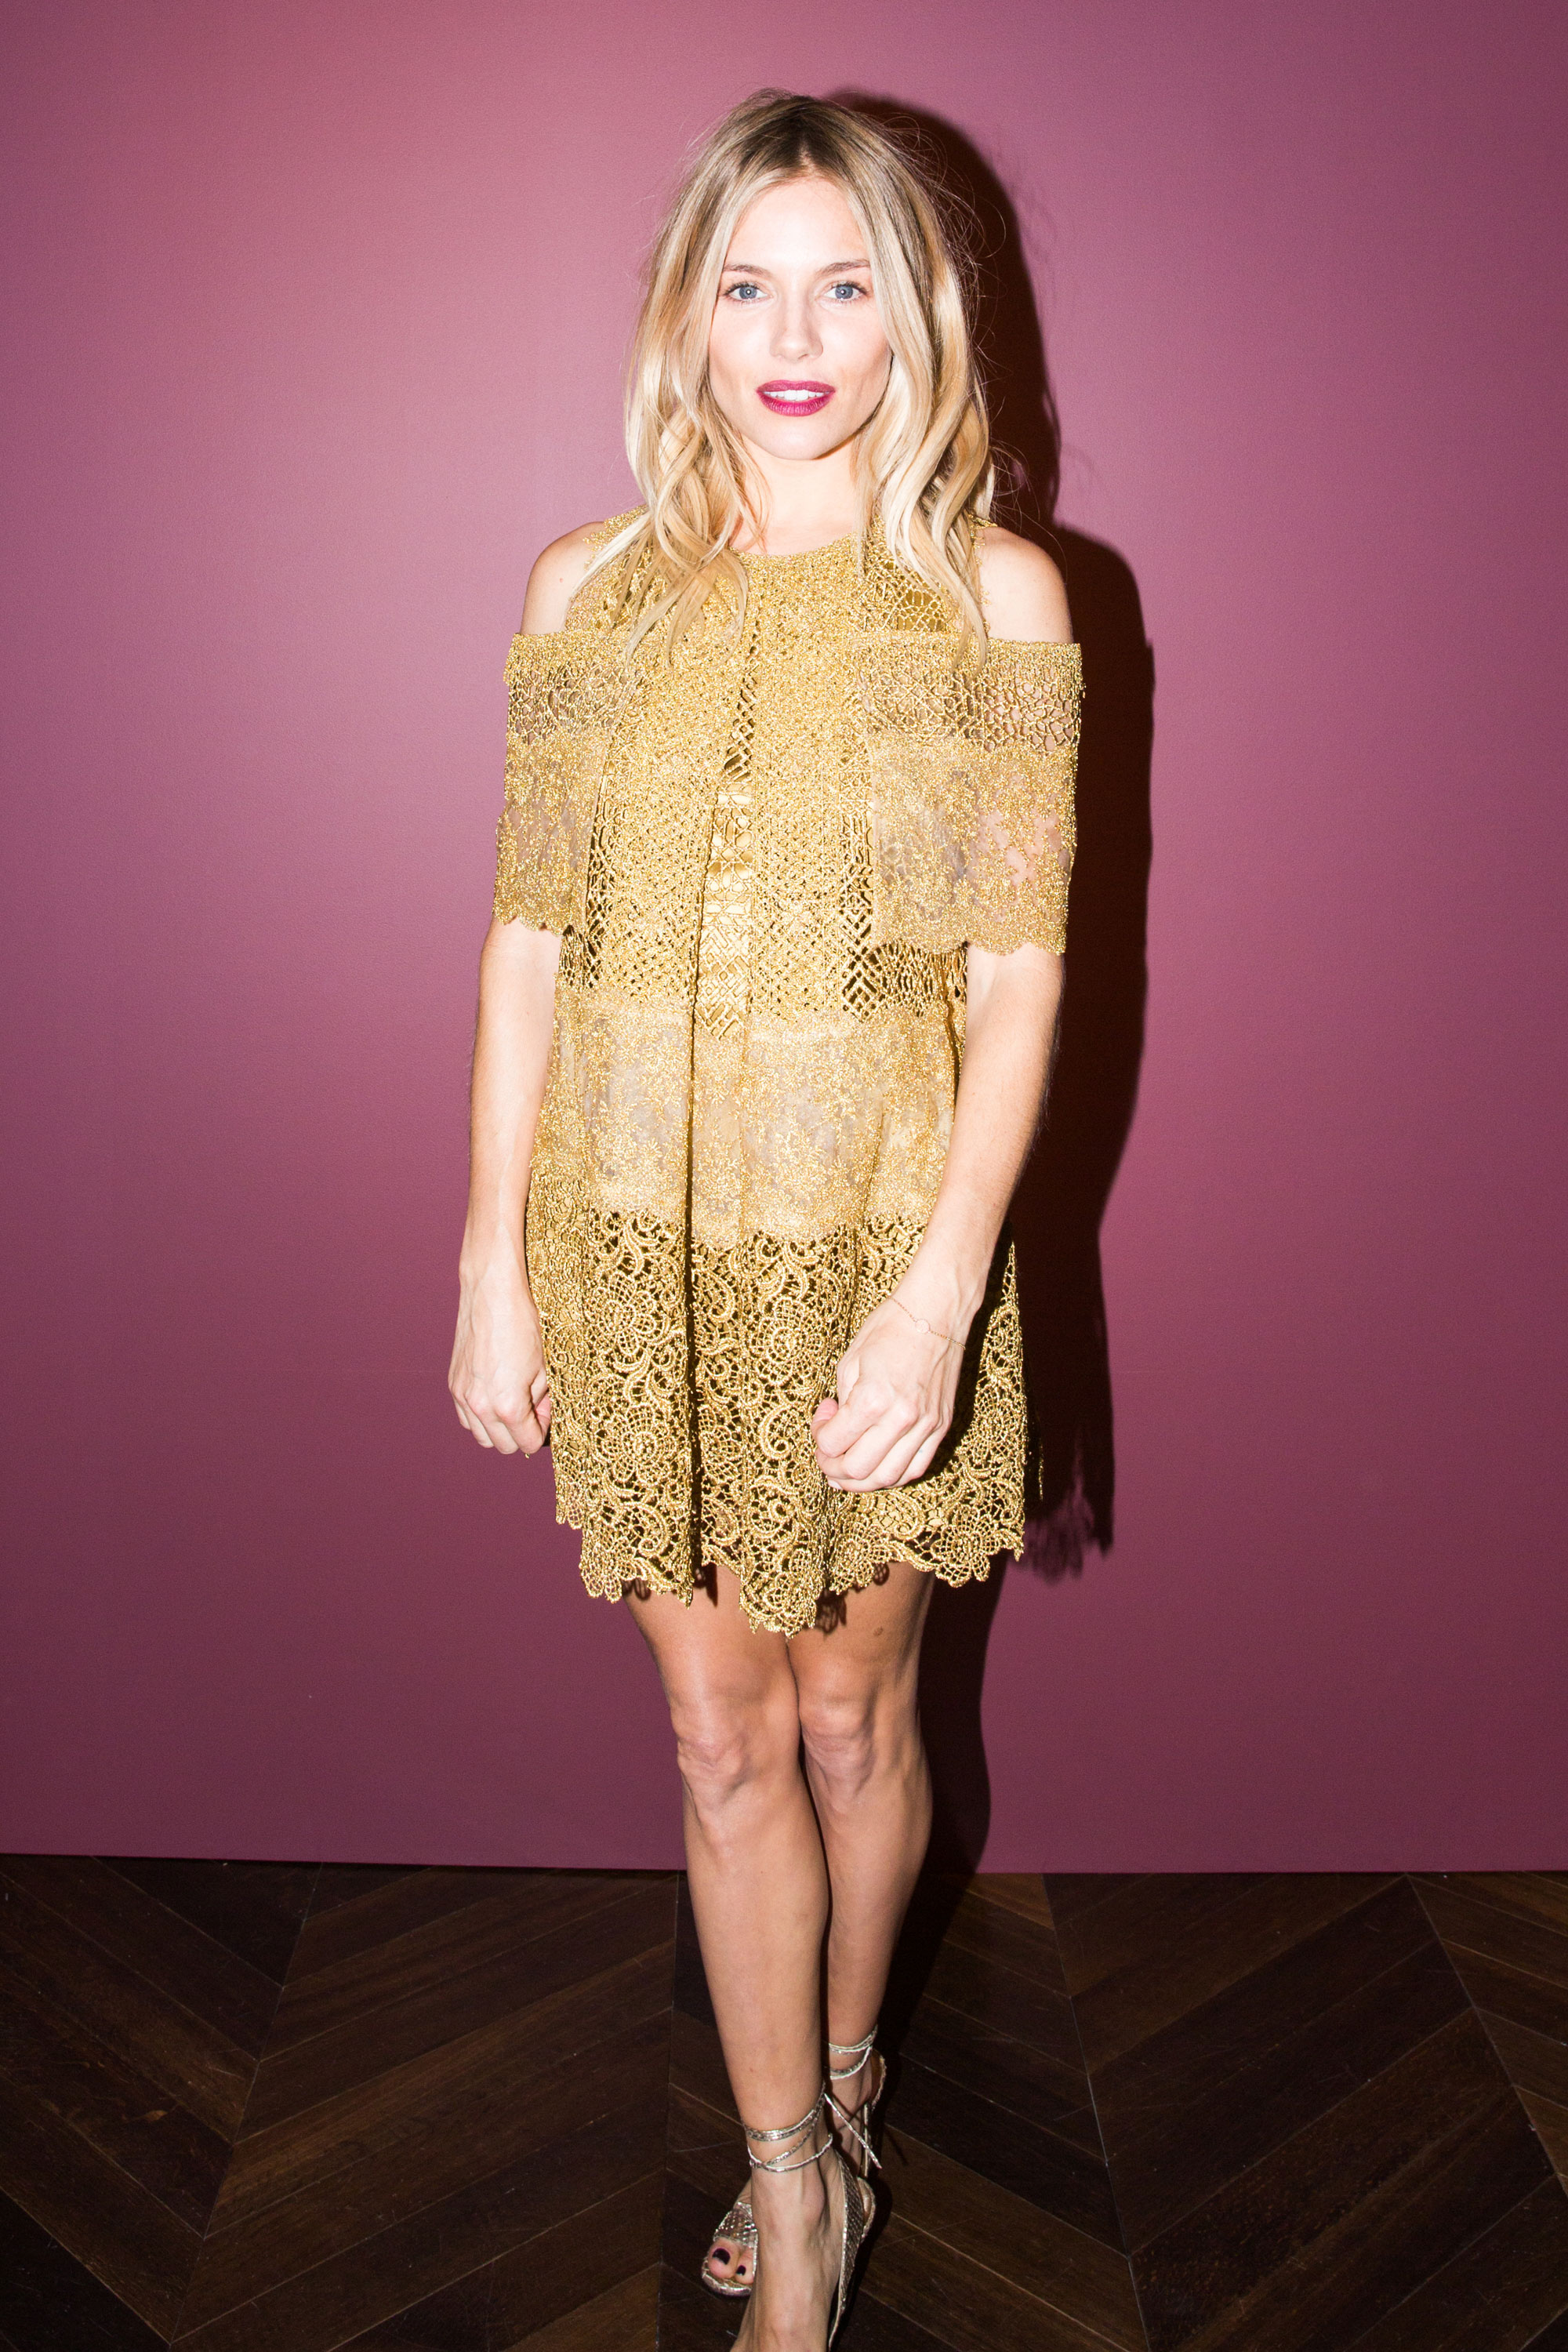 Sienna Miller On Her Style, Beauty Routine, and More ...